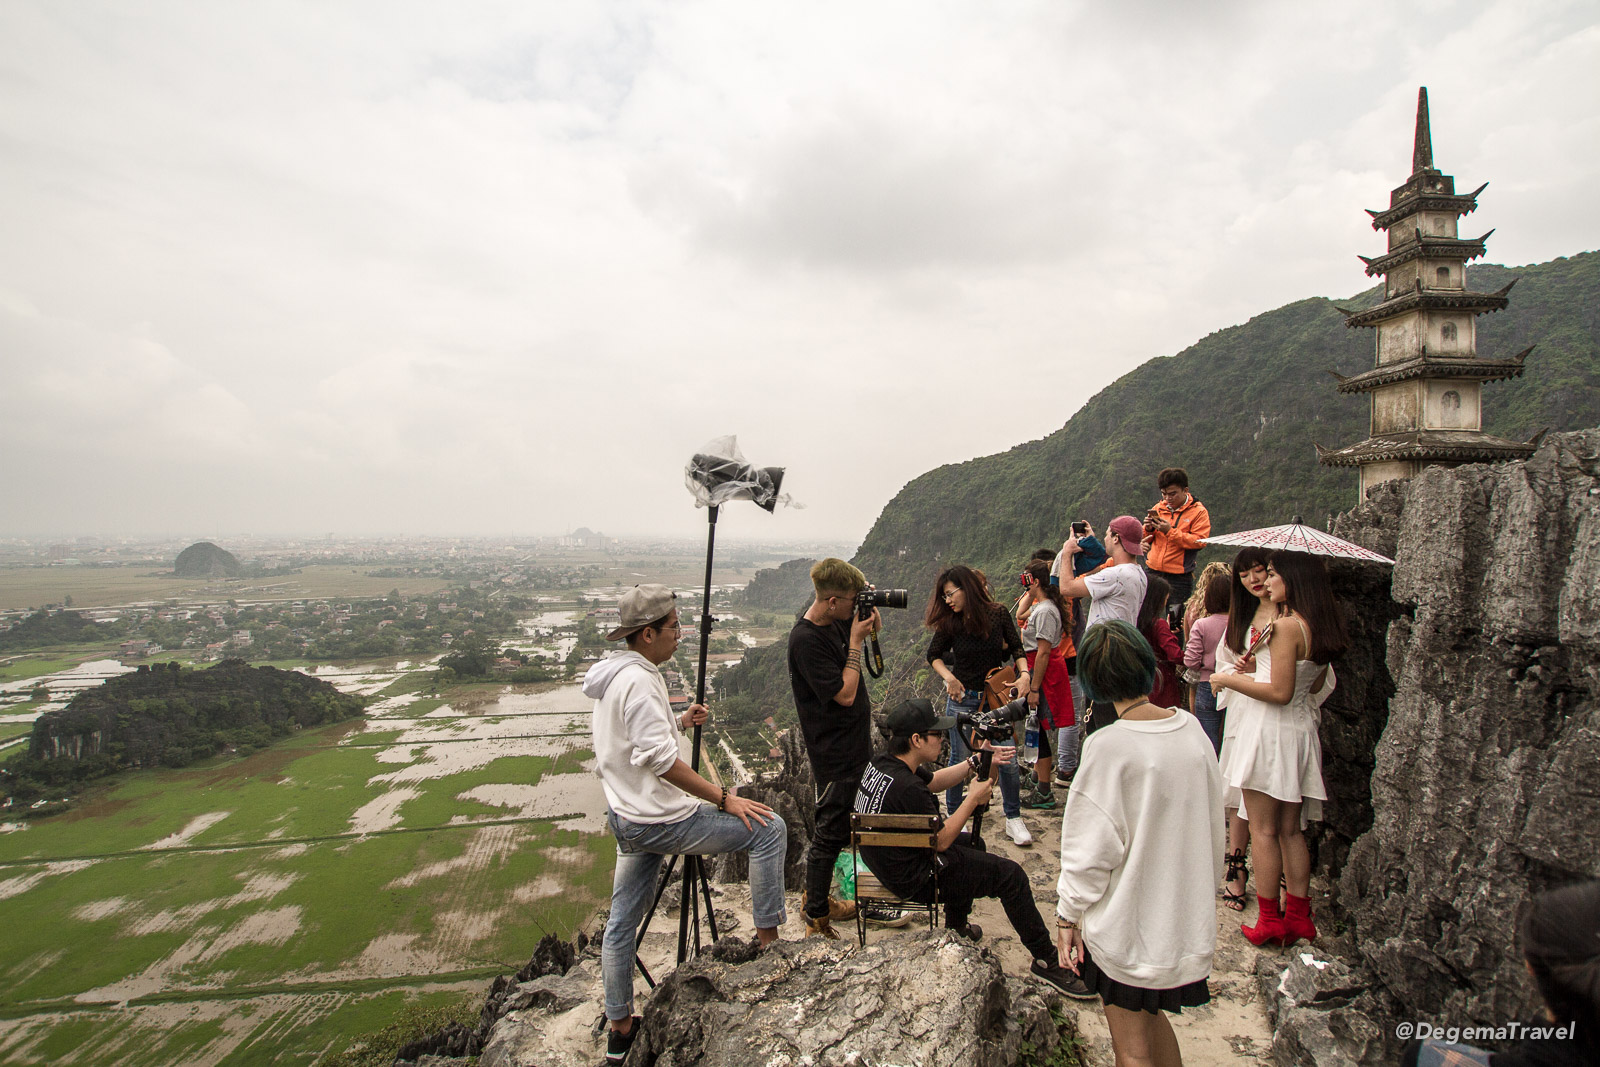 Photo shoot at Hang Mua Viewpoint in Tam Coc, Vietnam